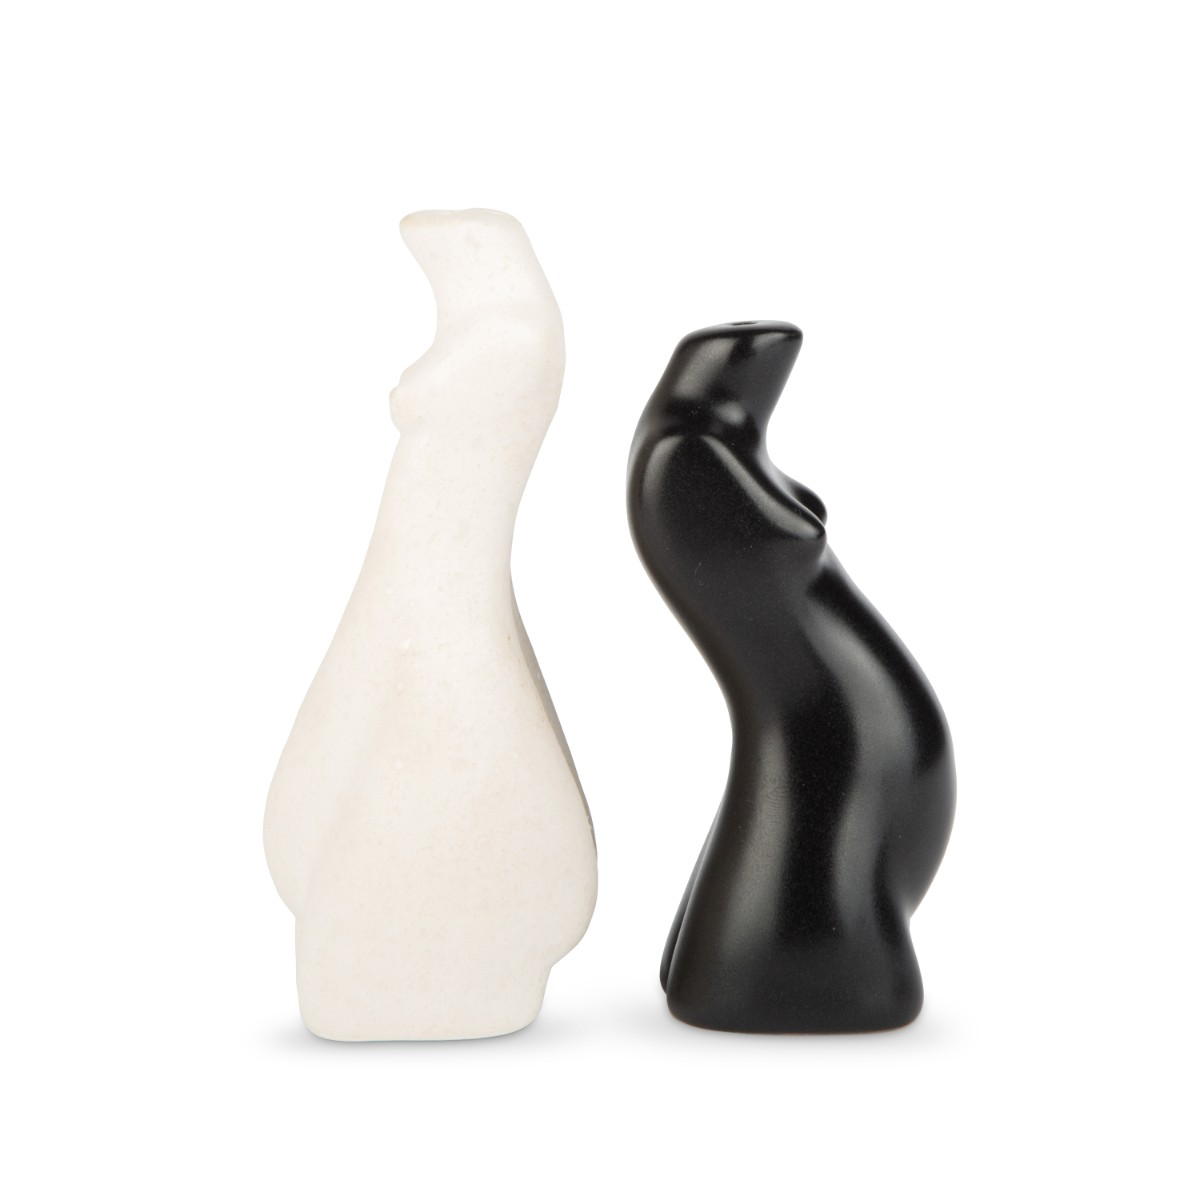 Anissa Kermiche | Tit for Tat Salt & Peppers Shakers